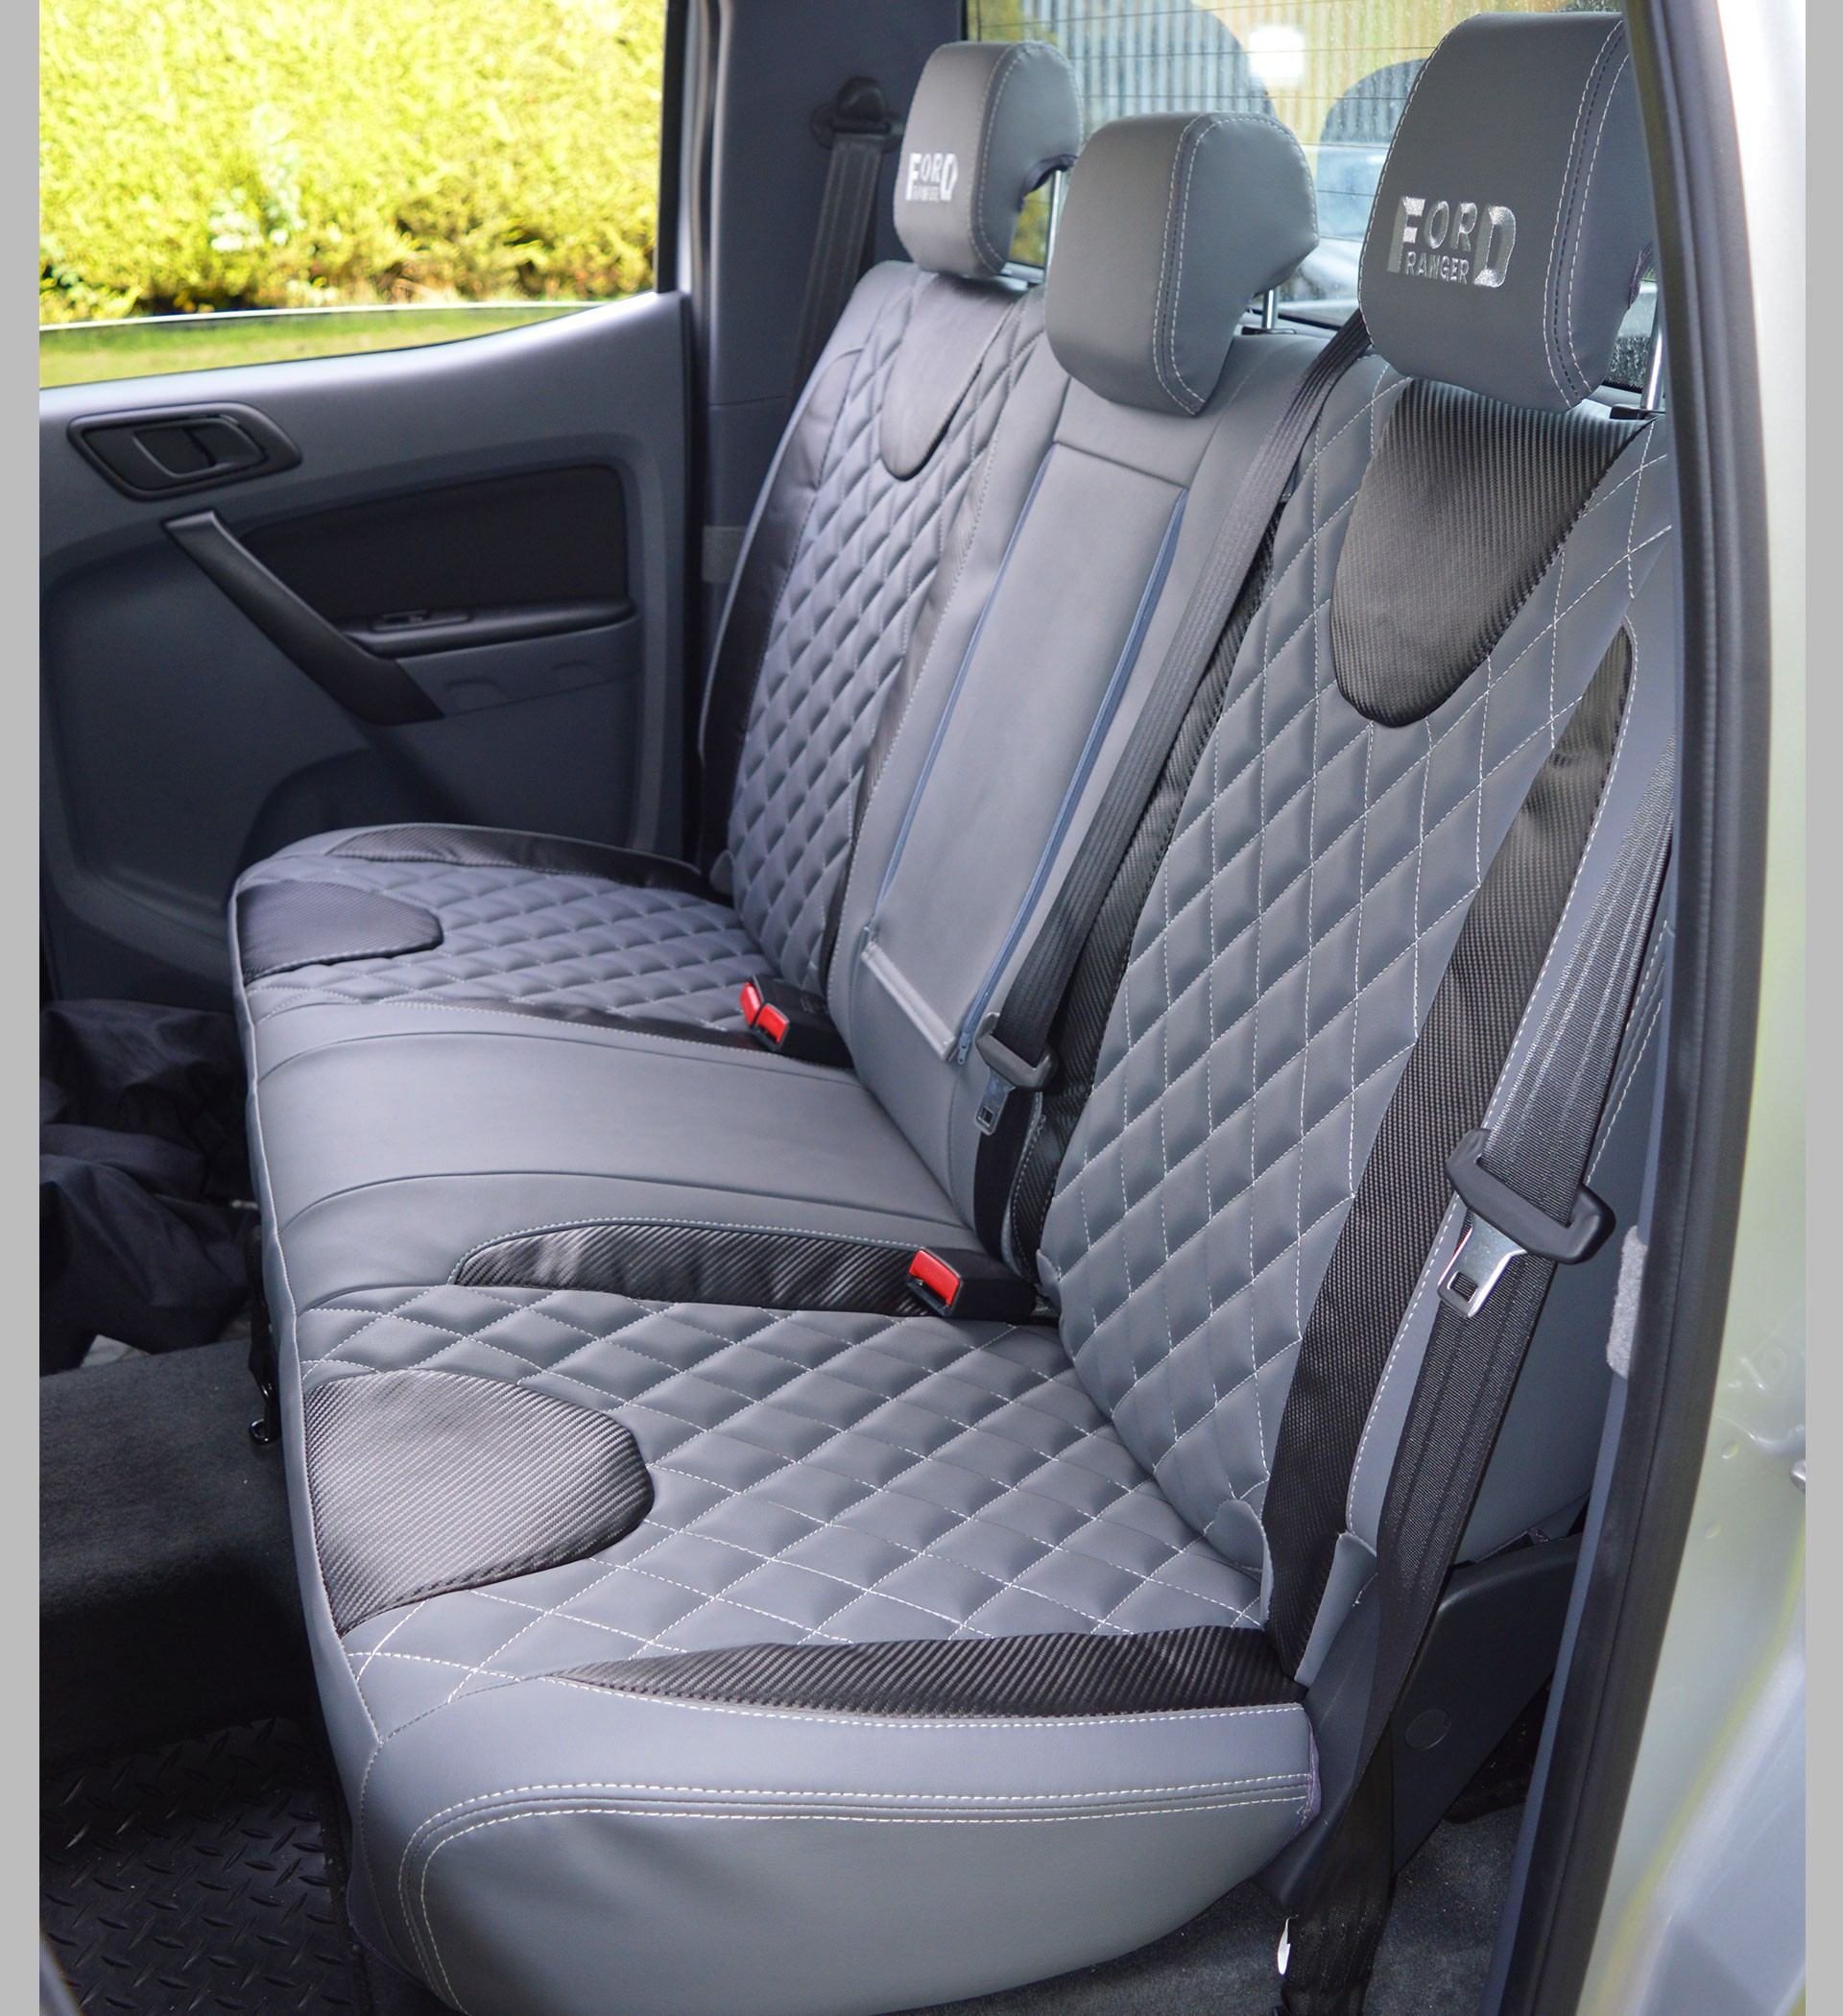 Ford Ranger Diamond Quilted Tailored Waterproof Seat